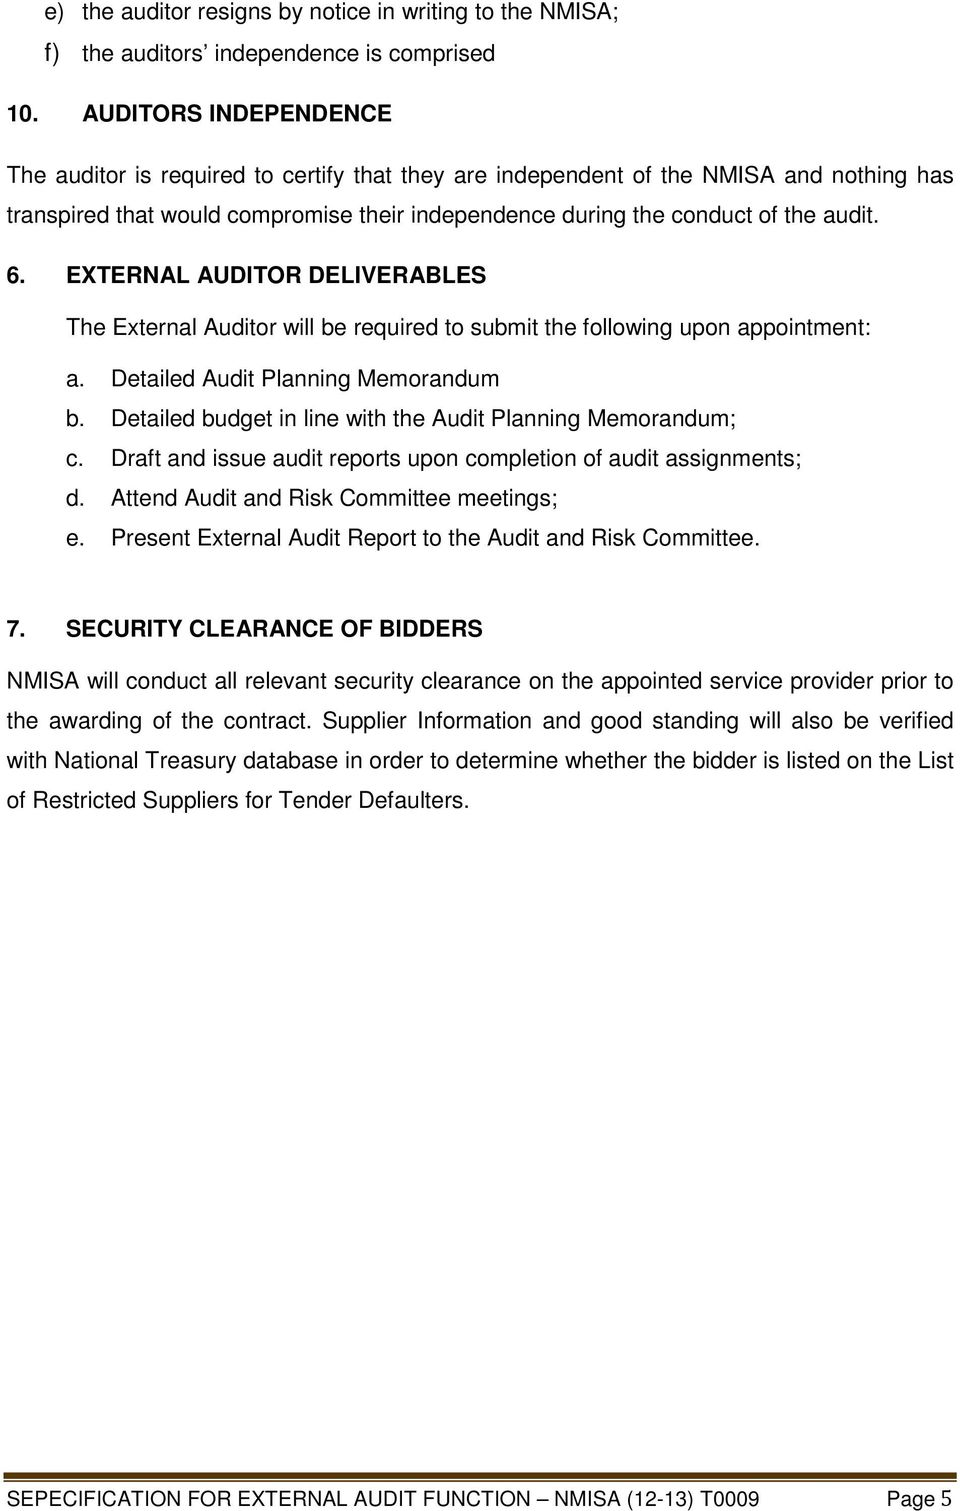 EXTERNAL AUDITOR DELIVERABLES The External Auditor will be required to submit the following upon appointment: a. Detailed Audit Planning Memorandum b.